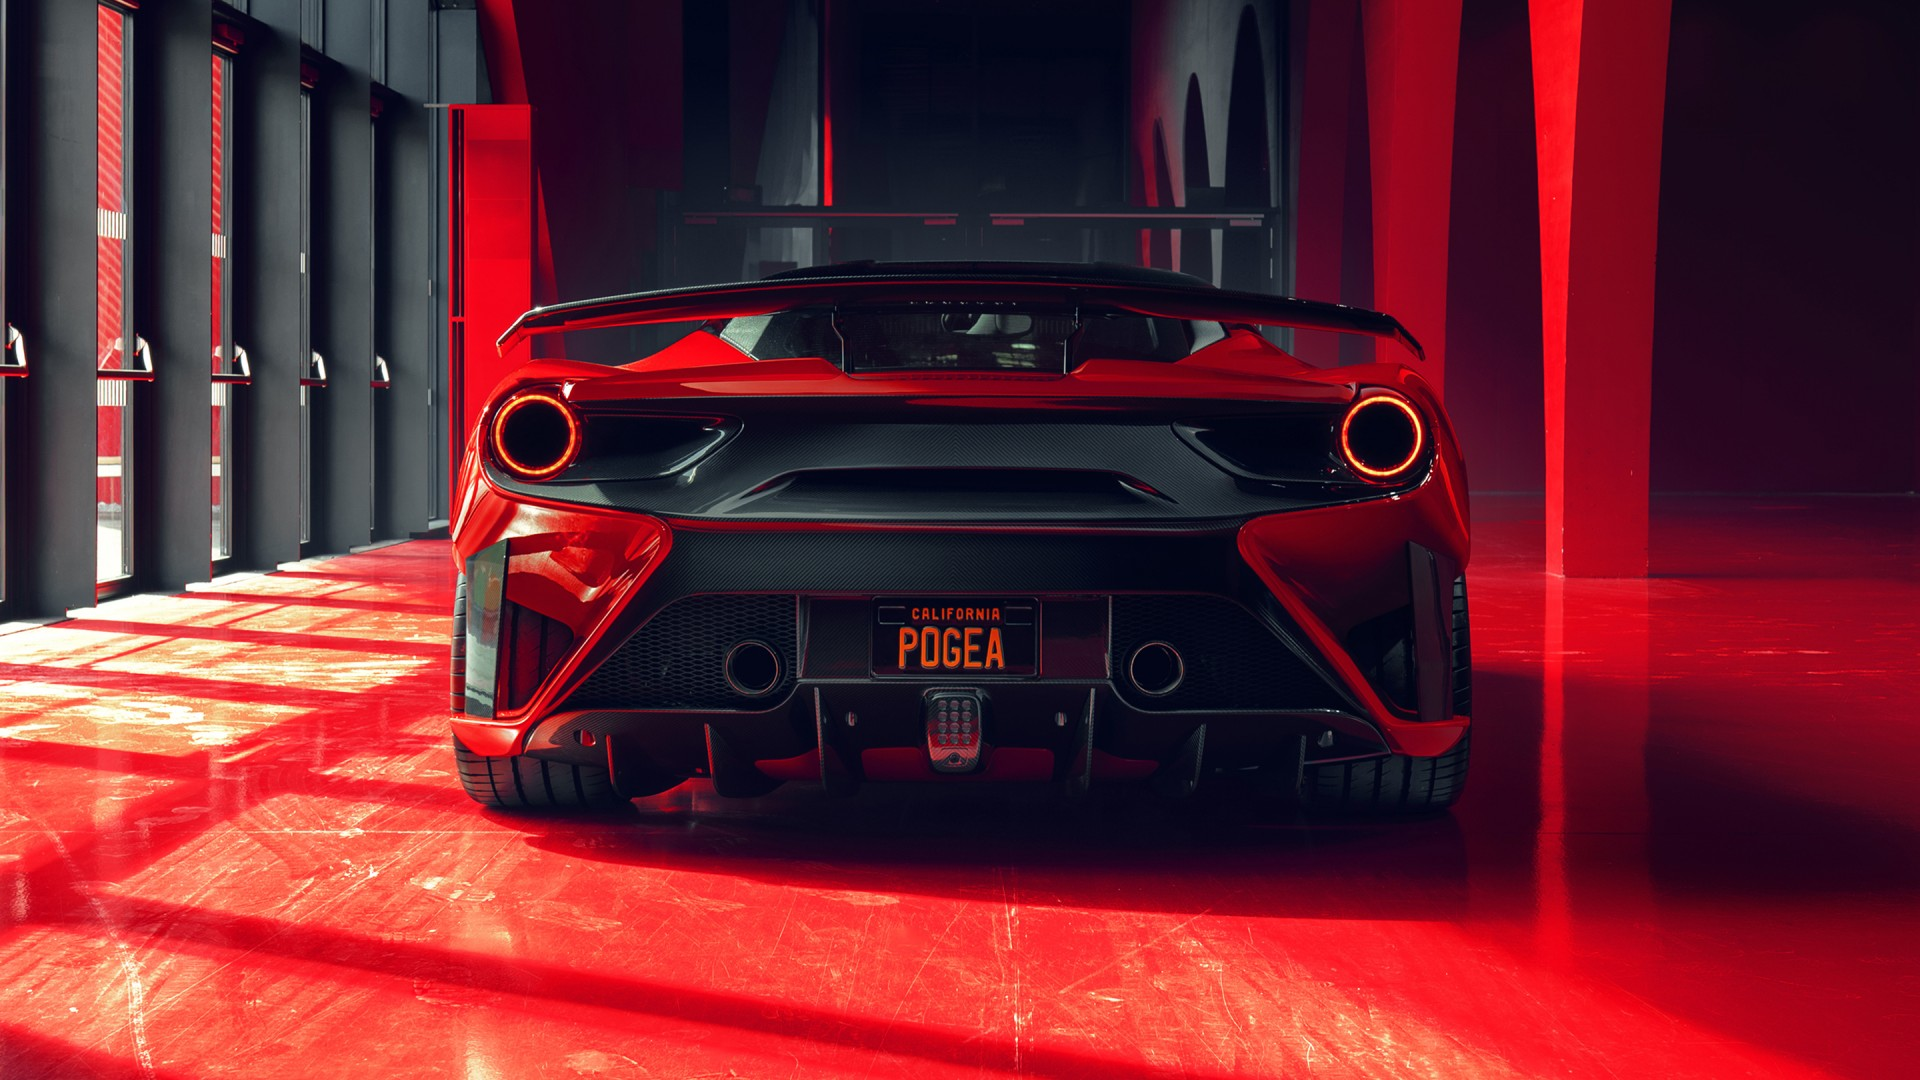 2018 Pogea Racing Fplus Corsa Ferrari 488 Gtb 2 Wallpaper